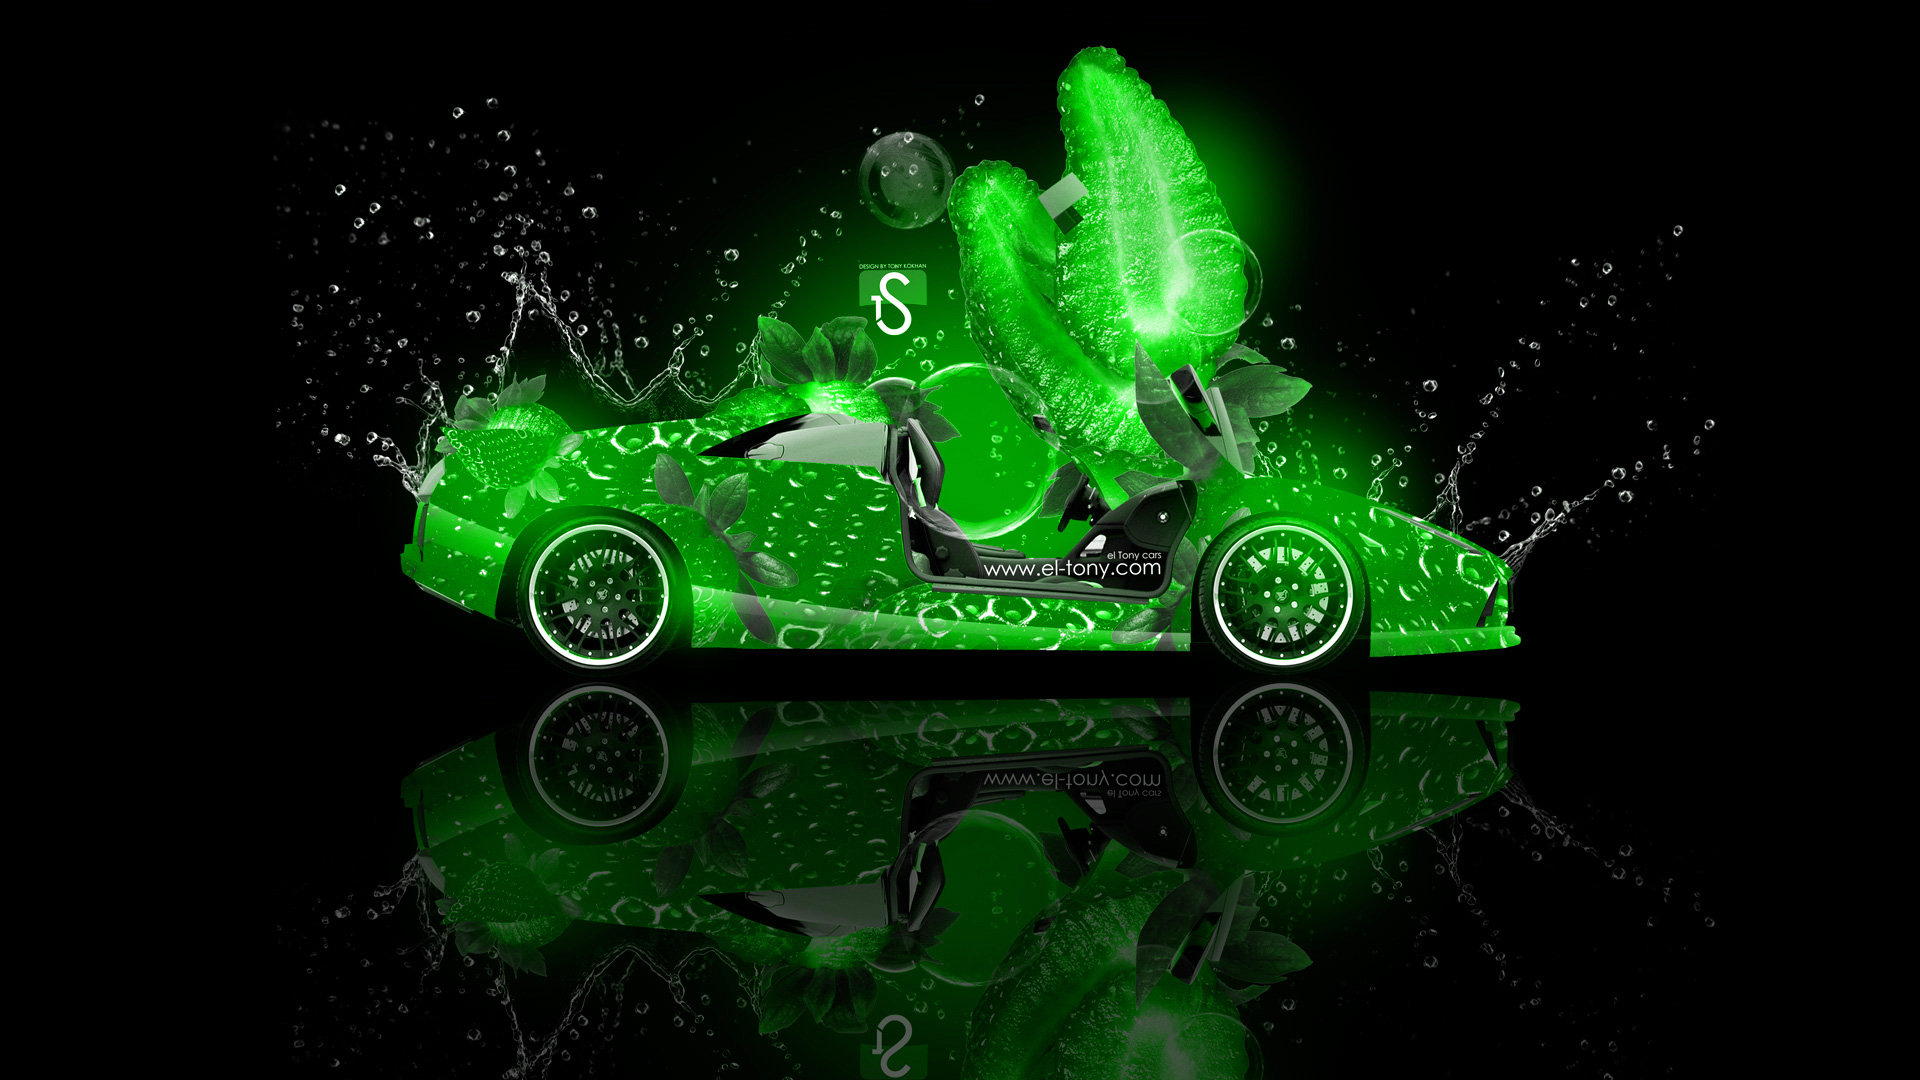 Charmant ... Lamborghini Murcielago Fantasy Green Strawberry Car 2013 Design  ...